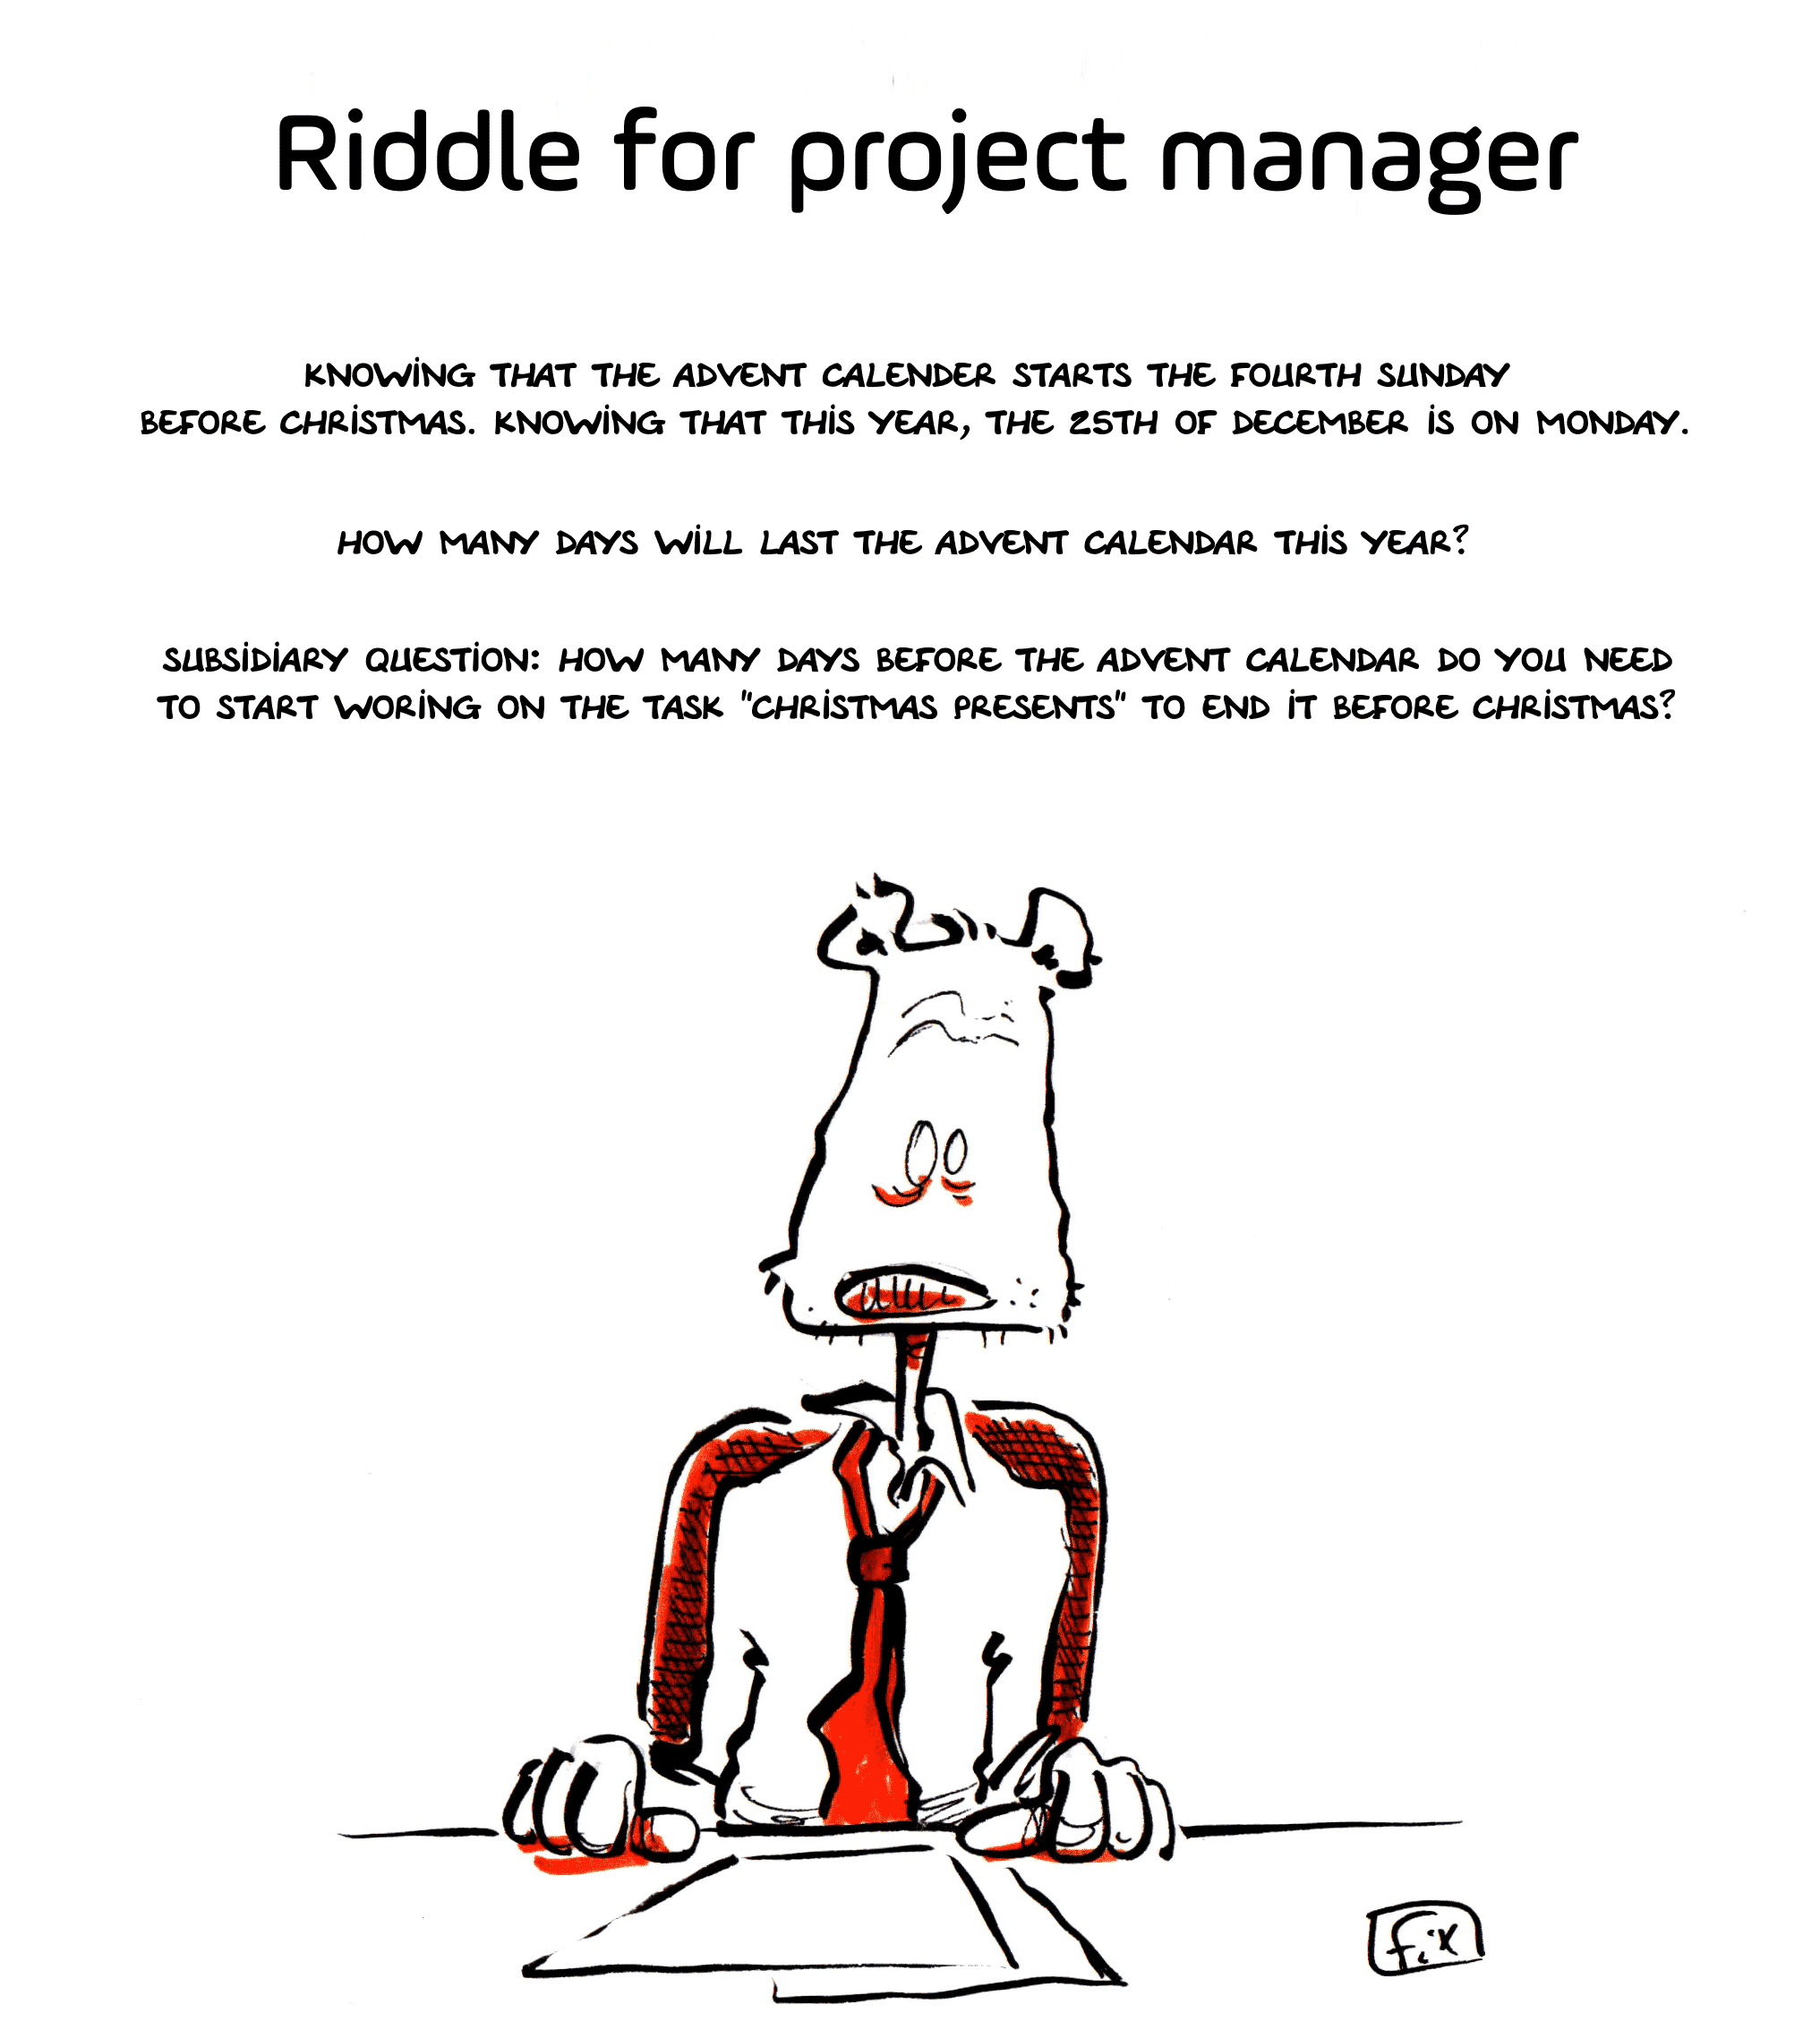 Project Manager riddle Christmas